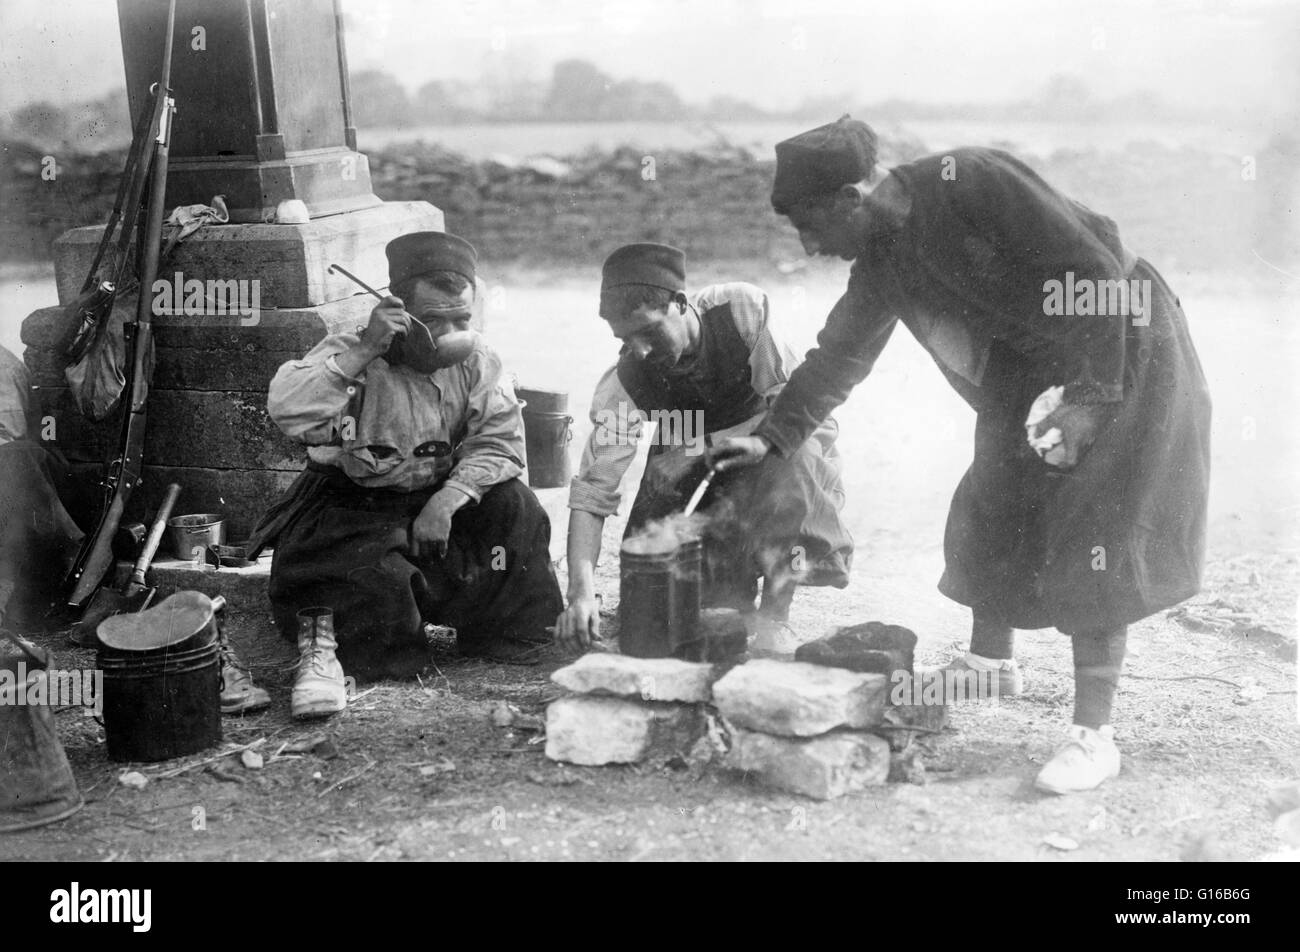 French Zouave soldiers drinking with ladles, during the beginning of World War I. Zouave was the title given to - Stock Image